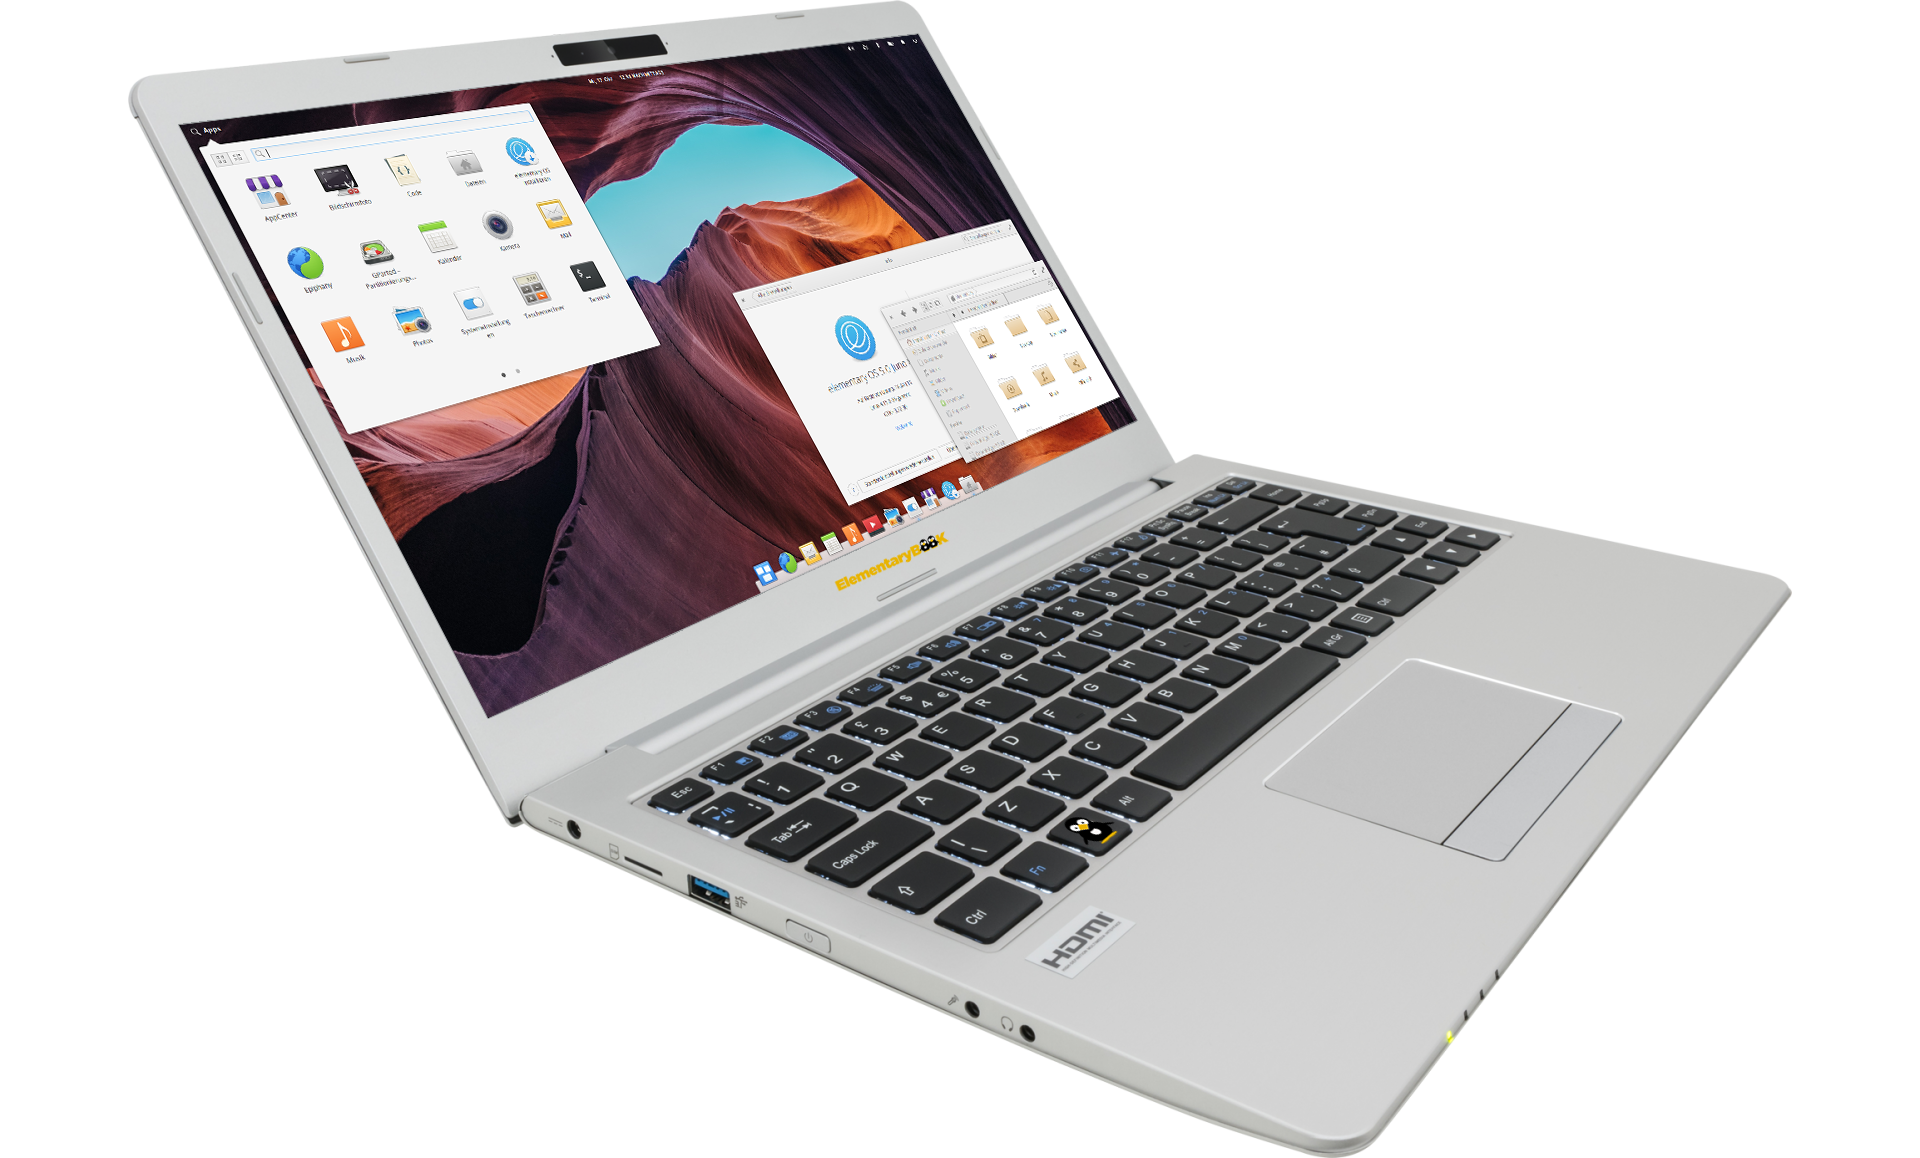 Elementary OS Notebook 14